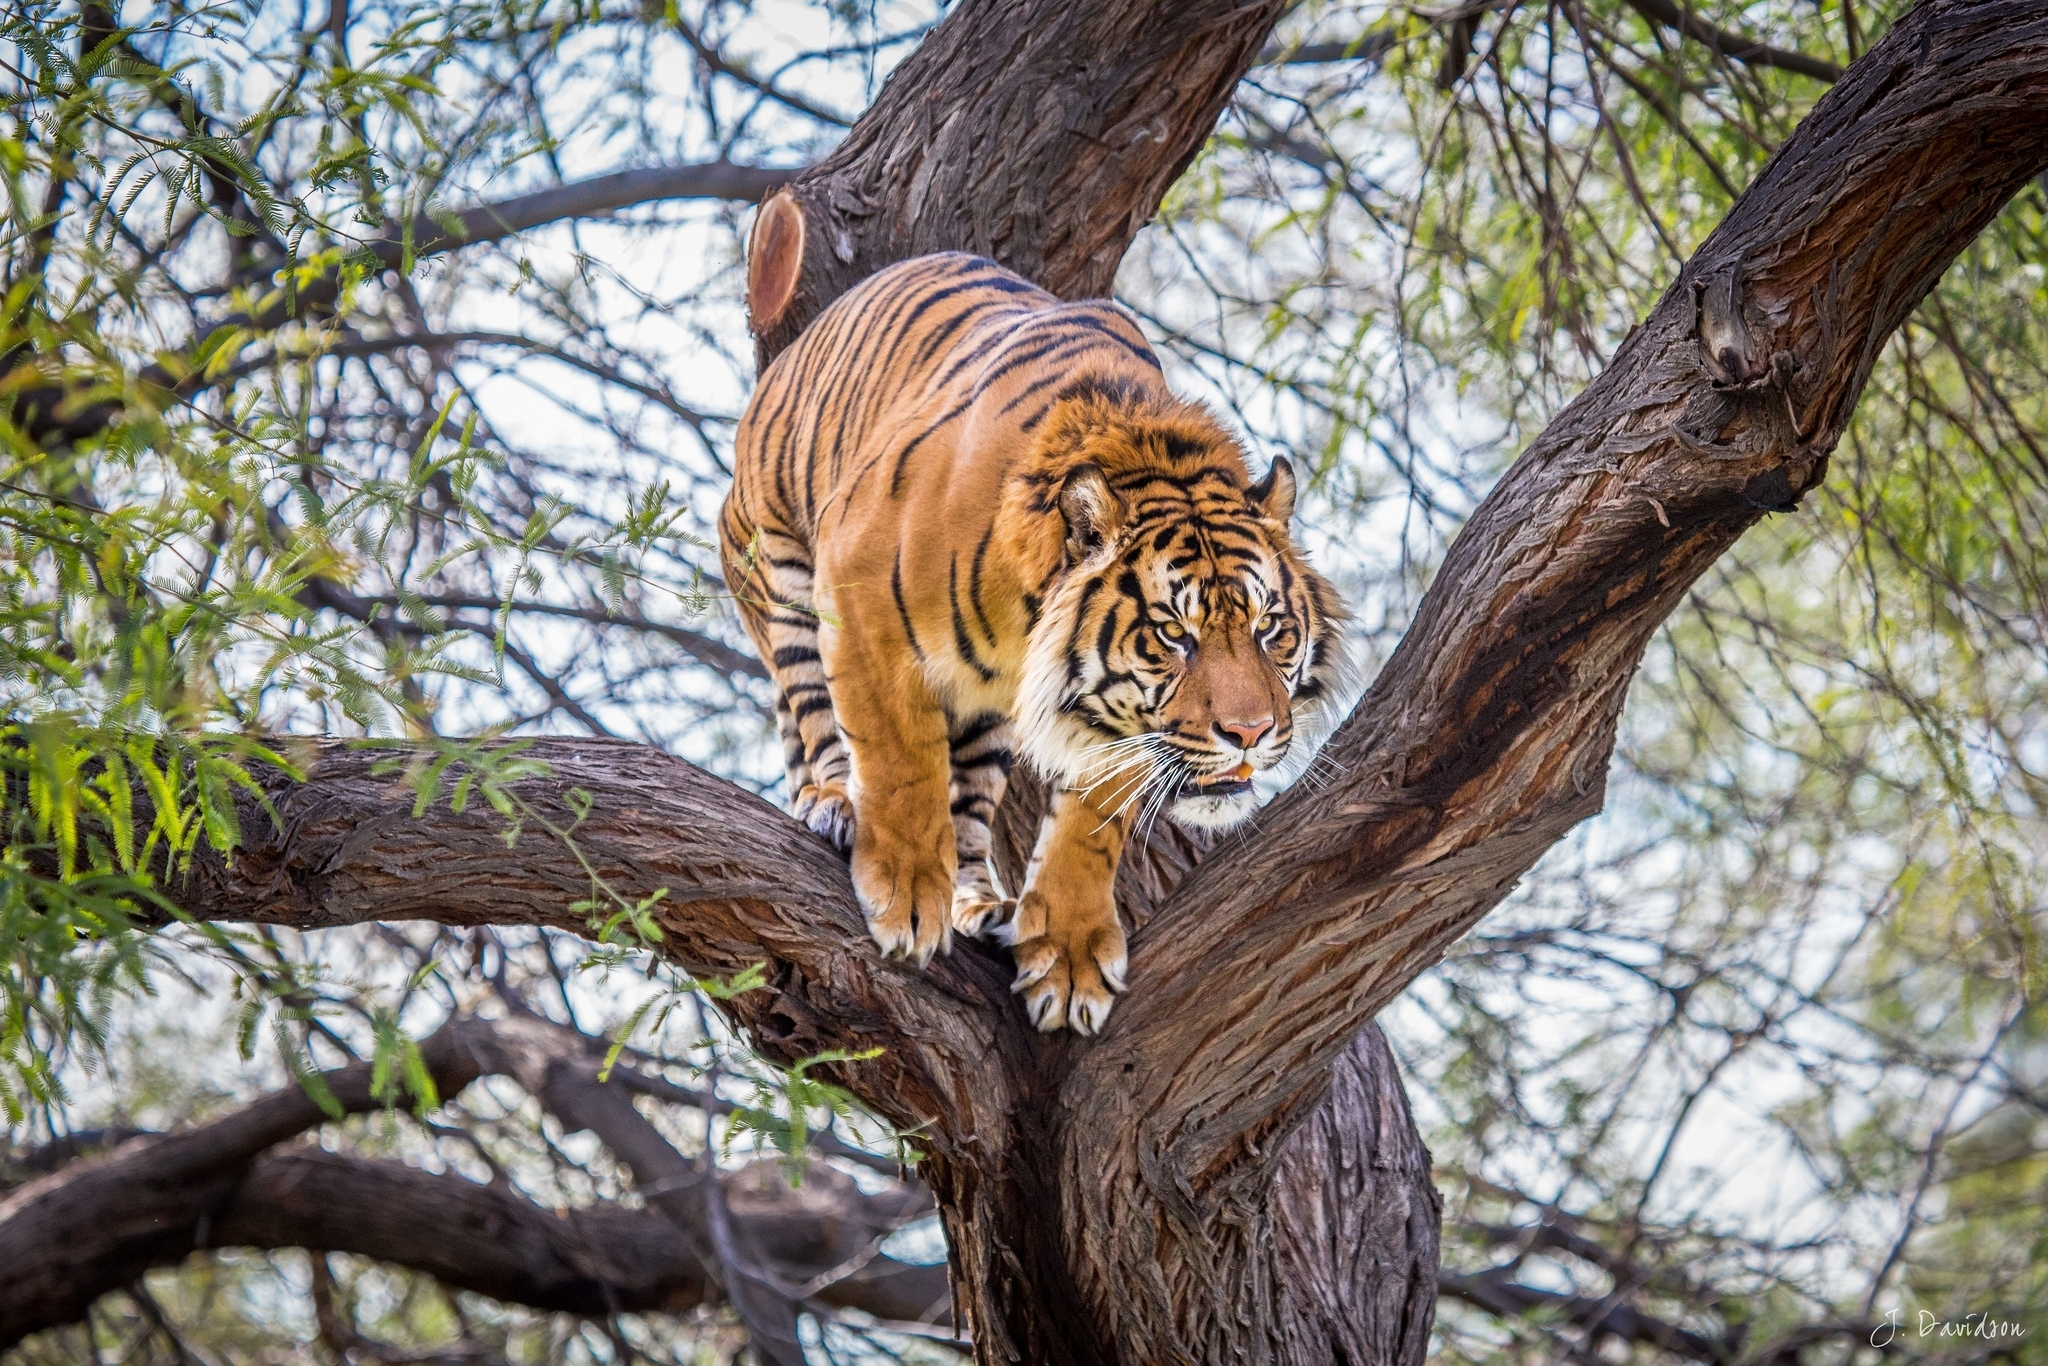 84685 download wallpaper Animals, Tiger, Wood, Tree, Predator screensavers and pictures for free